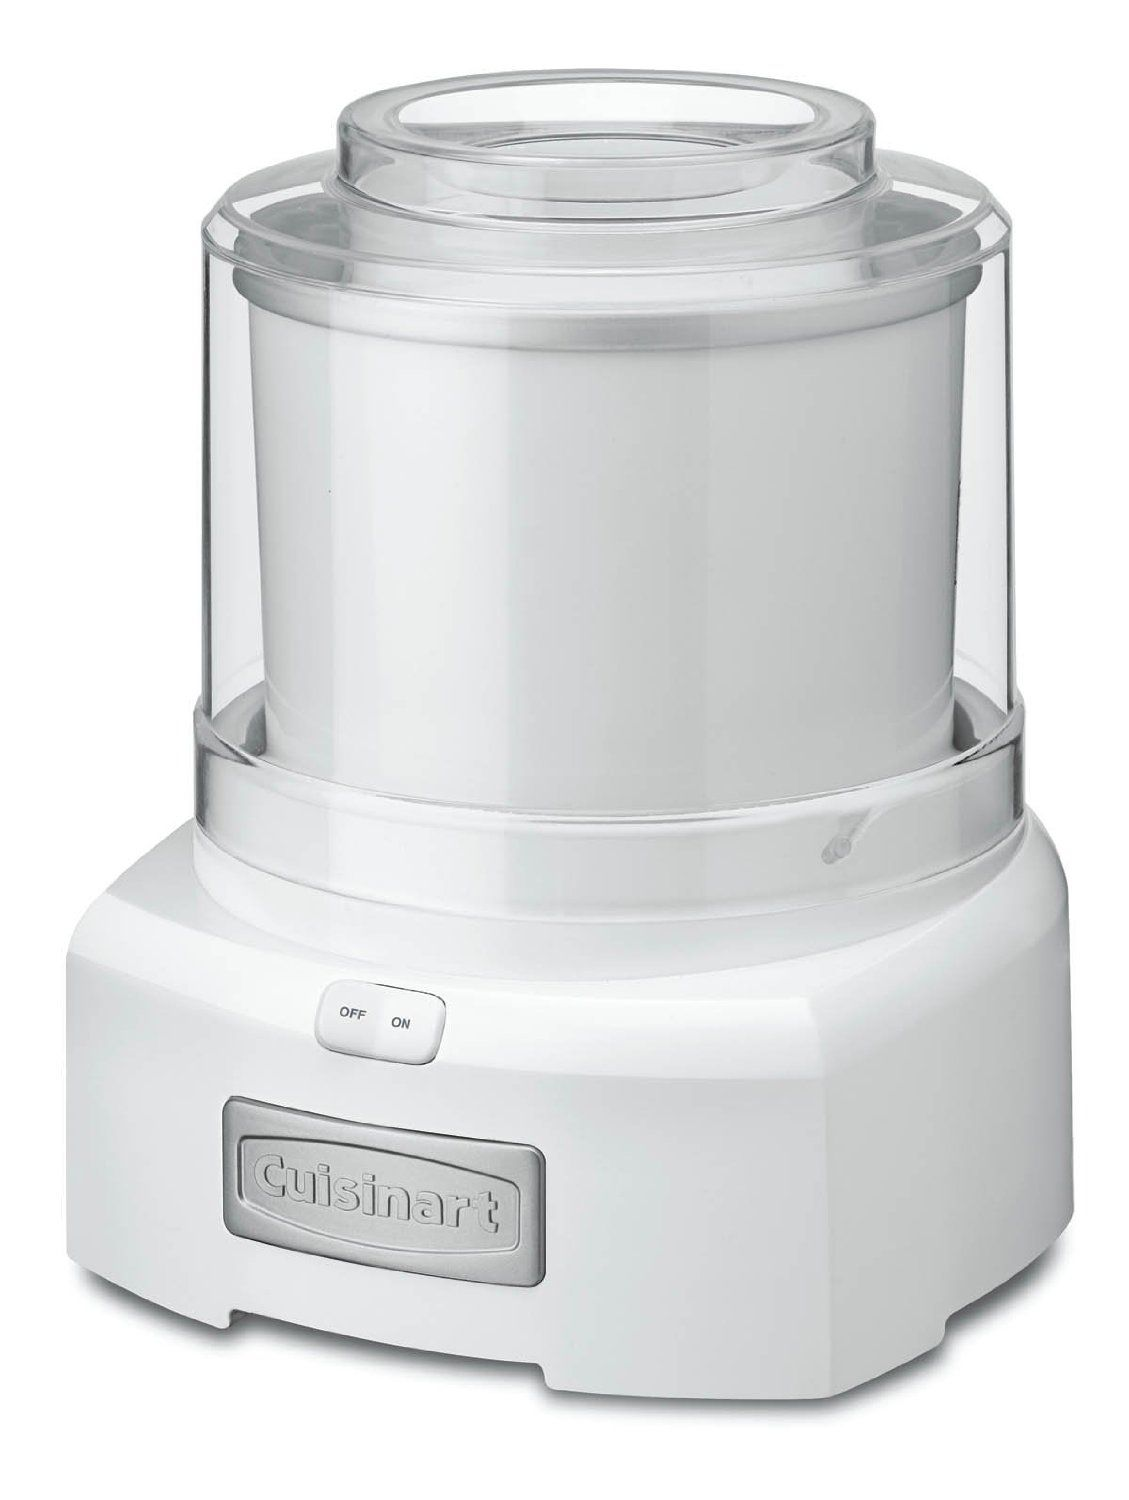 Cuisinart ice cream maker stainless steel - Amazing Benefits Of Having A Cuisinart Ice Cream Maker Manual At Home